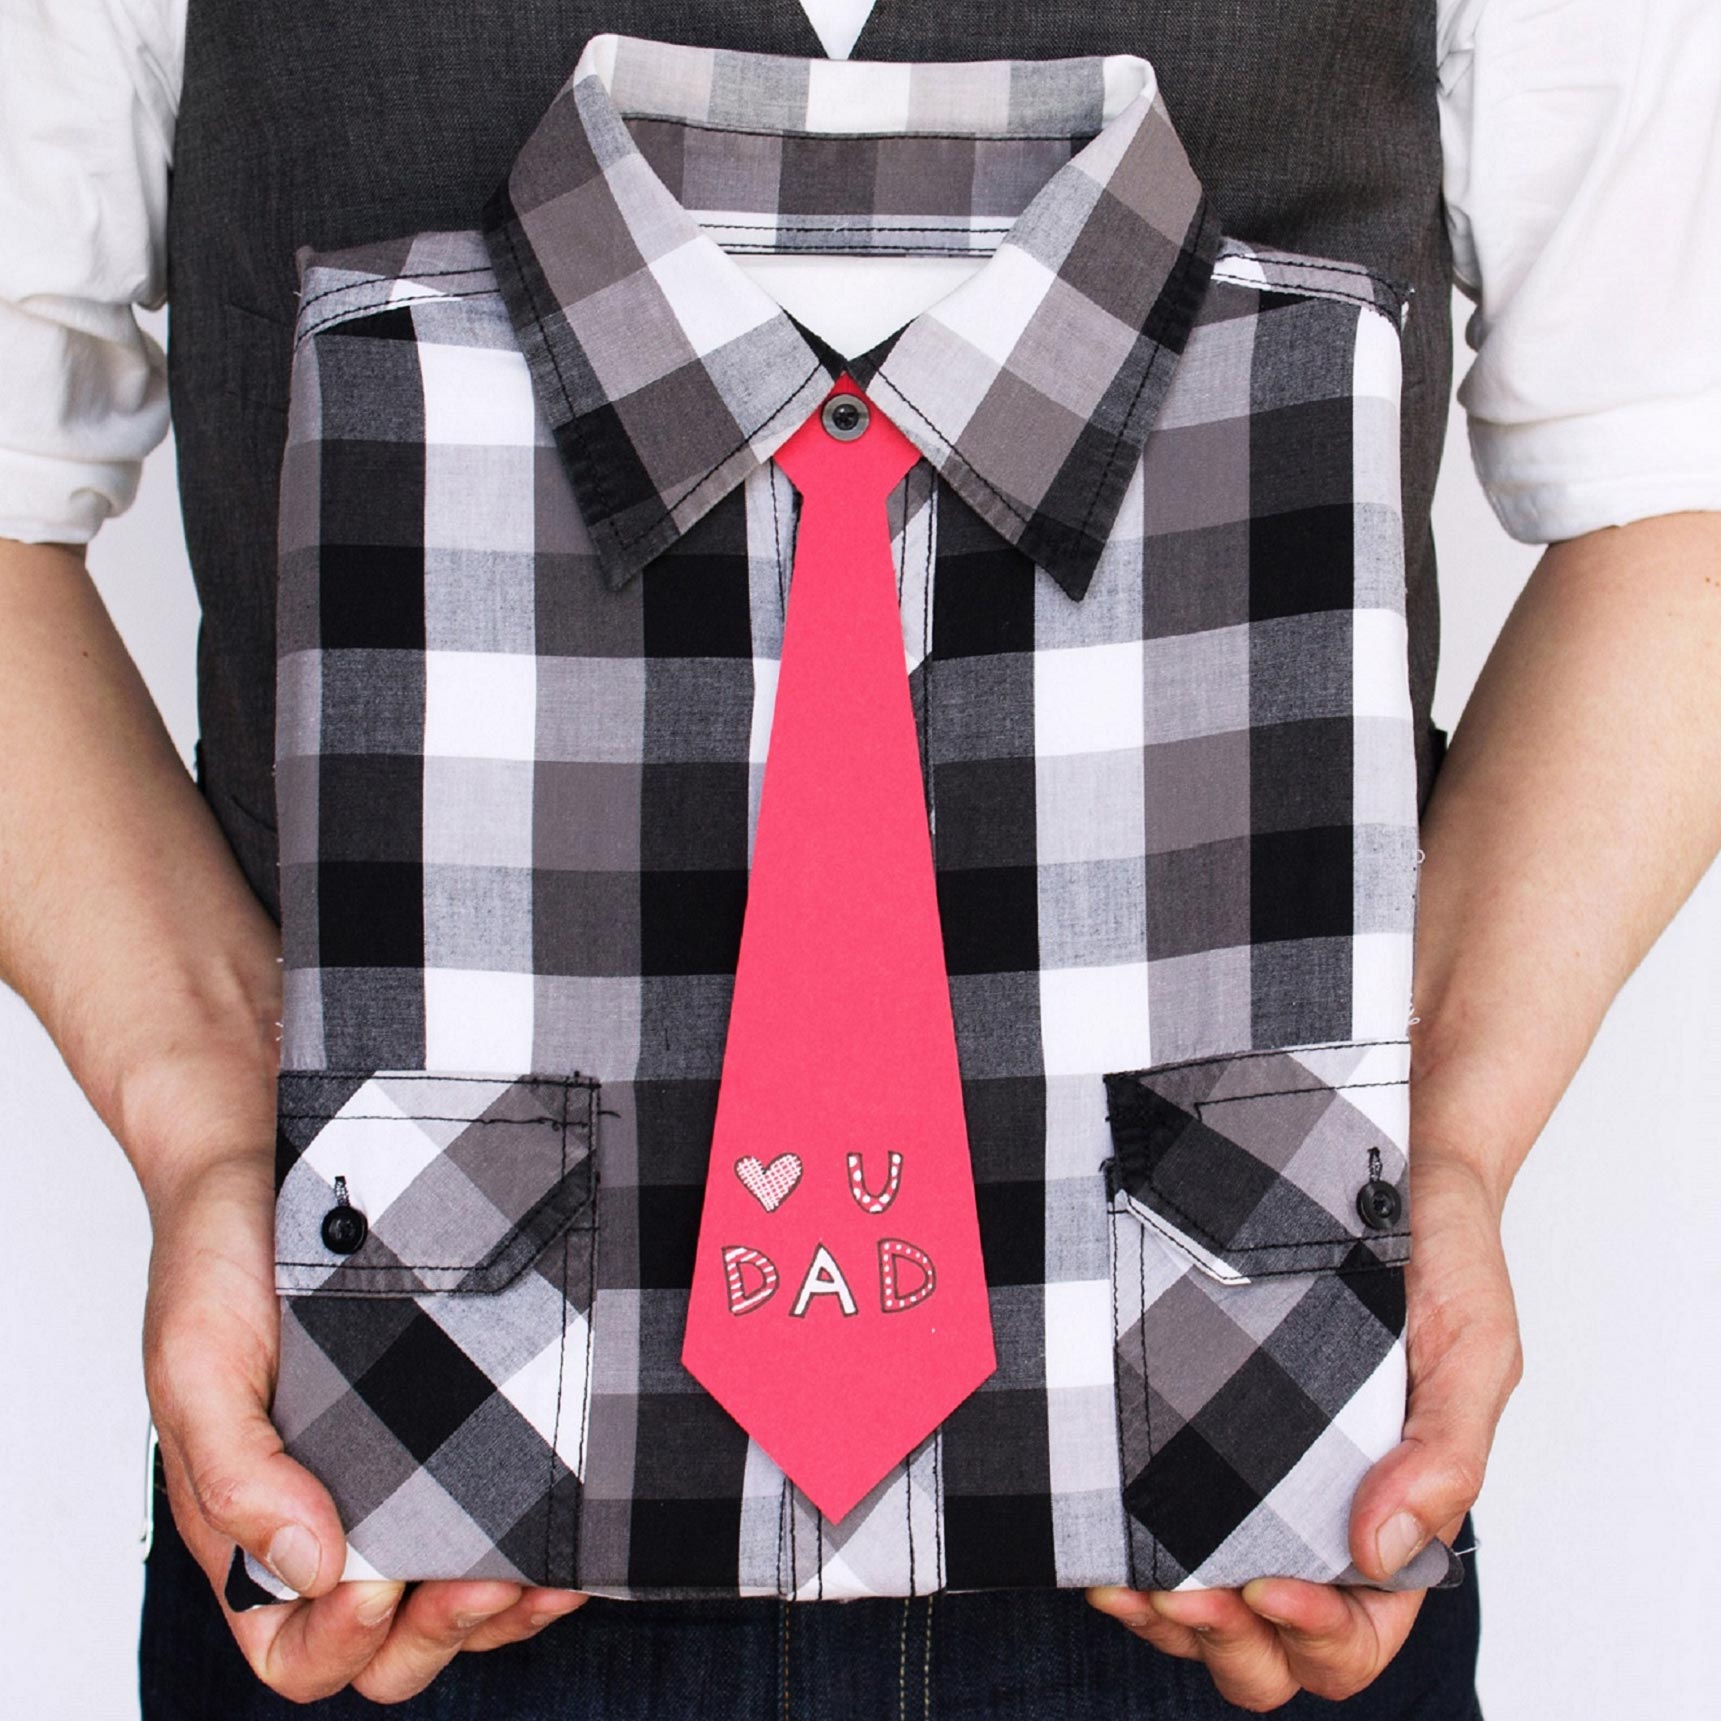 "If you want to make something for Father's Day and make use of old, unused items in your home, this craft will be a win-win. It uses one of Dad's old dress shirts for a one-of-a-kind gift-wrapped package. The finishing touch is the paper-made necktie scribbled to say, ""Love you, Dad.""To begin, cut off sleeves at the seam. Fasten the buttons, turn it inside out, and place your gift inside. Add the gift inside the shirt so you can pin where you need to sew. Remove the gift, sew the bottom and sides of the shirt, and trim any extra fabric. Slip in your gift, fasten the buttons, and fold the shirt's collar. Cut out a tie using cardstock paper, cut a slit and a circle at the top of the tie to fit around the top button of the gift-wrap, and secure it around the top button.Shop Now: Astrobrights Colored Card Stock, $5, target.com; Martha Stewart All-Purpose Scissors, $21, michaels.com."